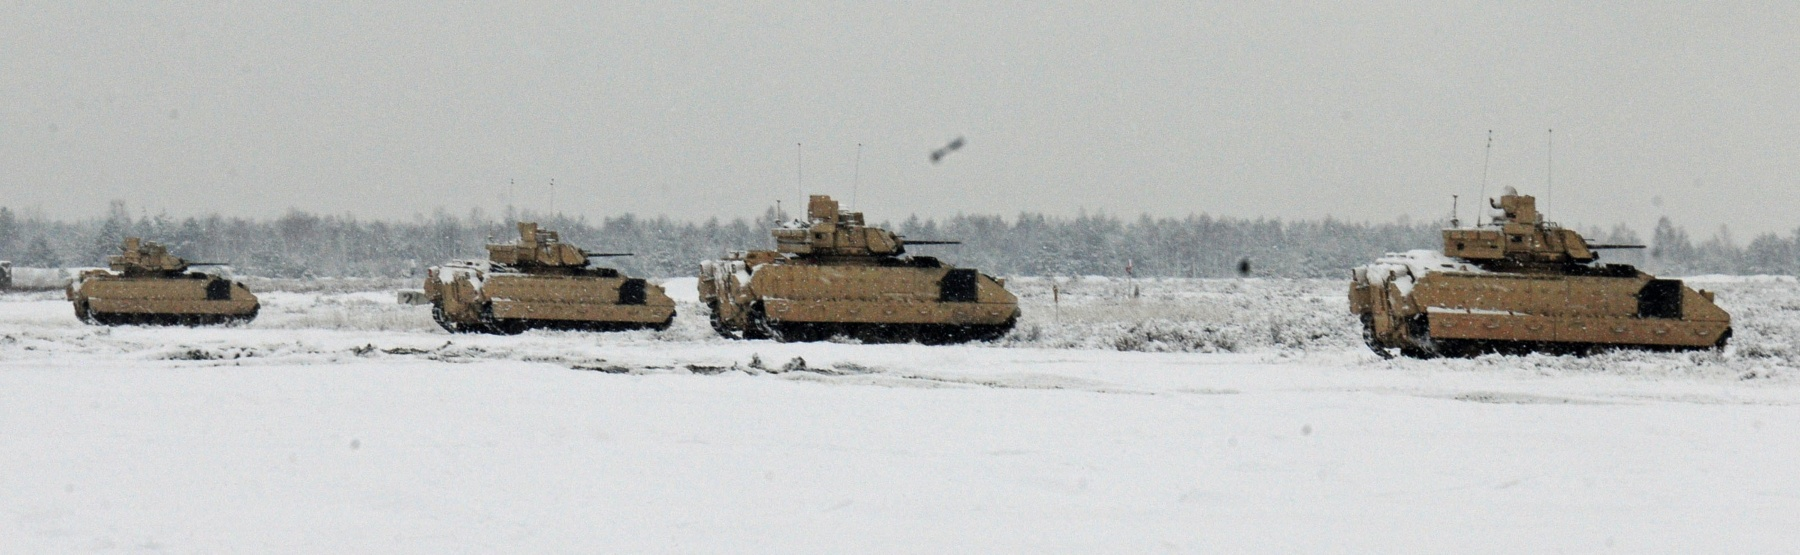 Poland. US troops conduct first gunnery range